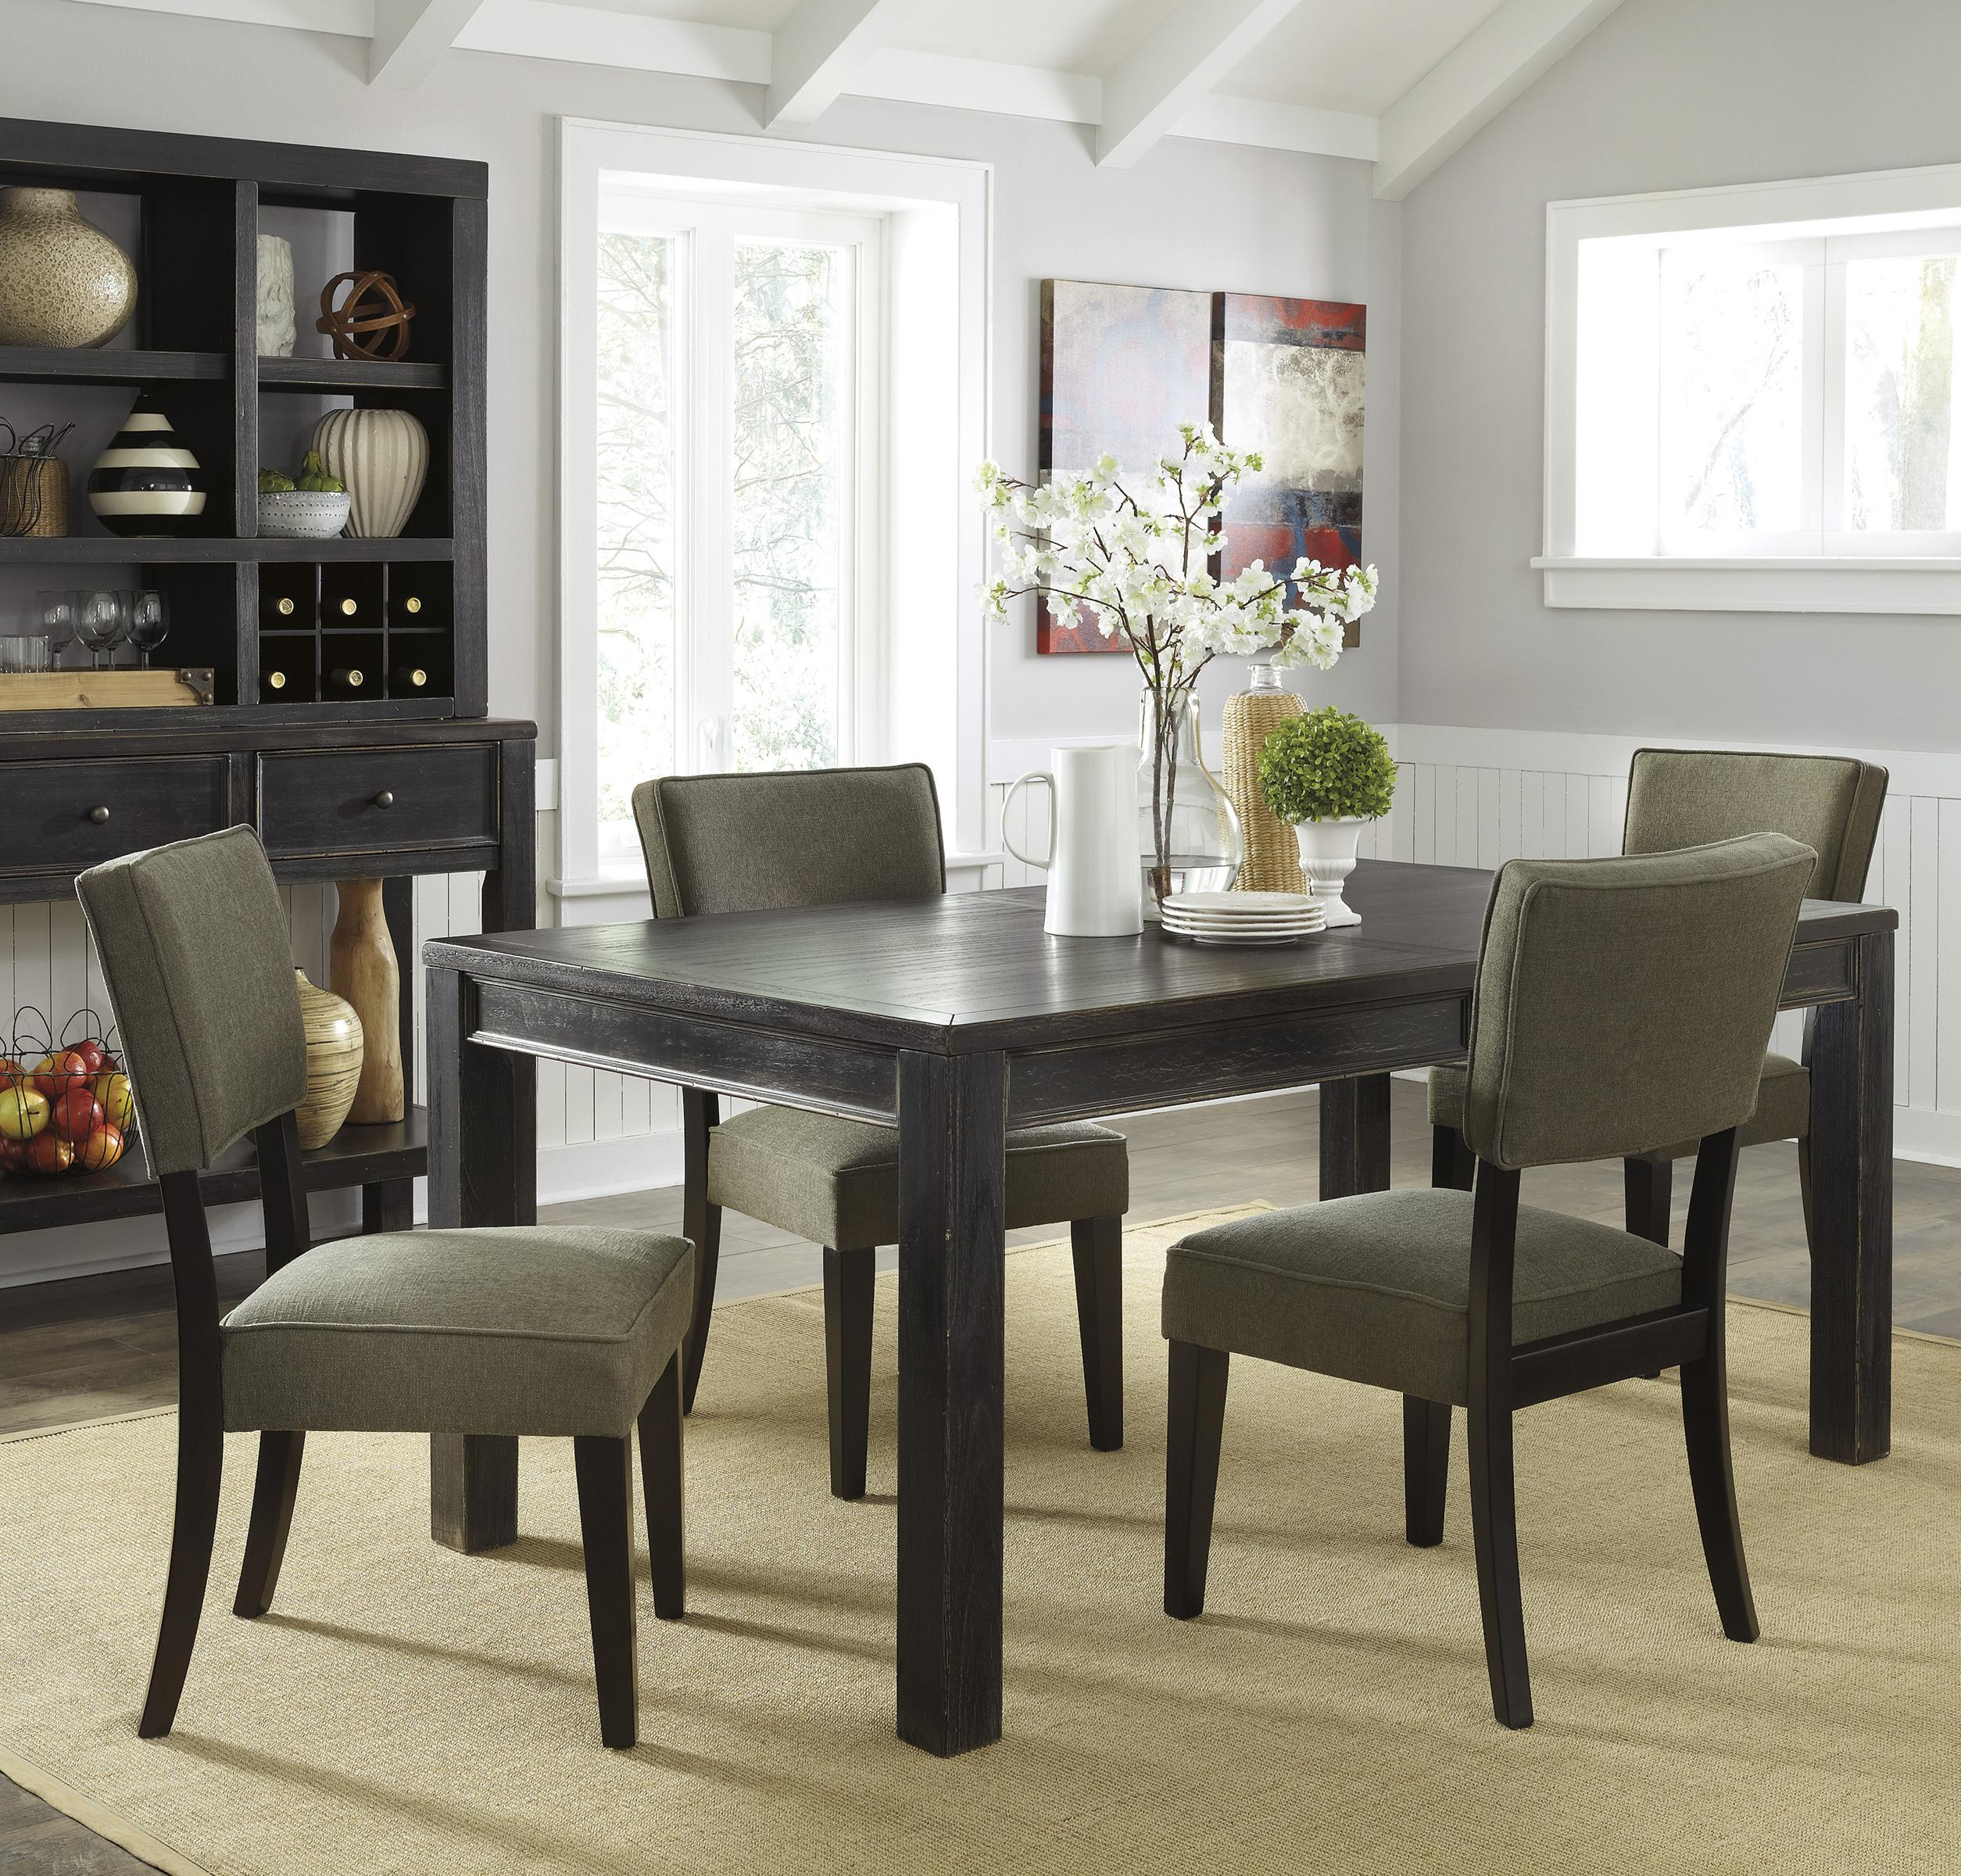 Signature Design by Ashley Gavelston 5-Piece Rectangular Table Dining Set - Item Number: D532-25+4x02